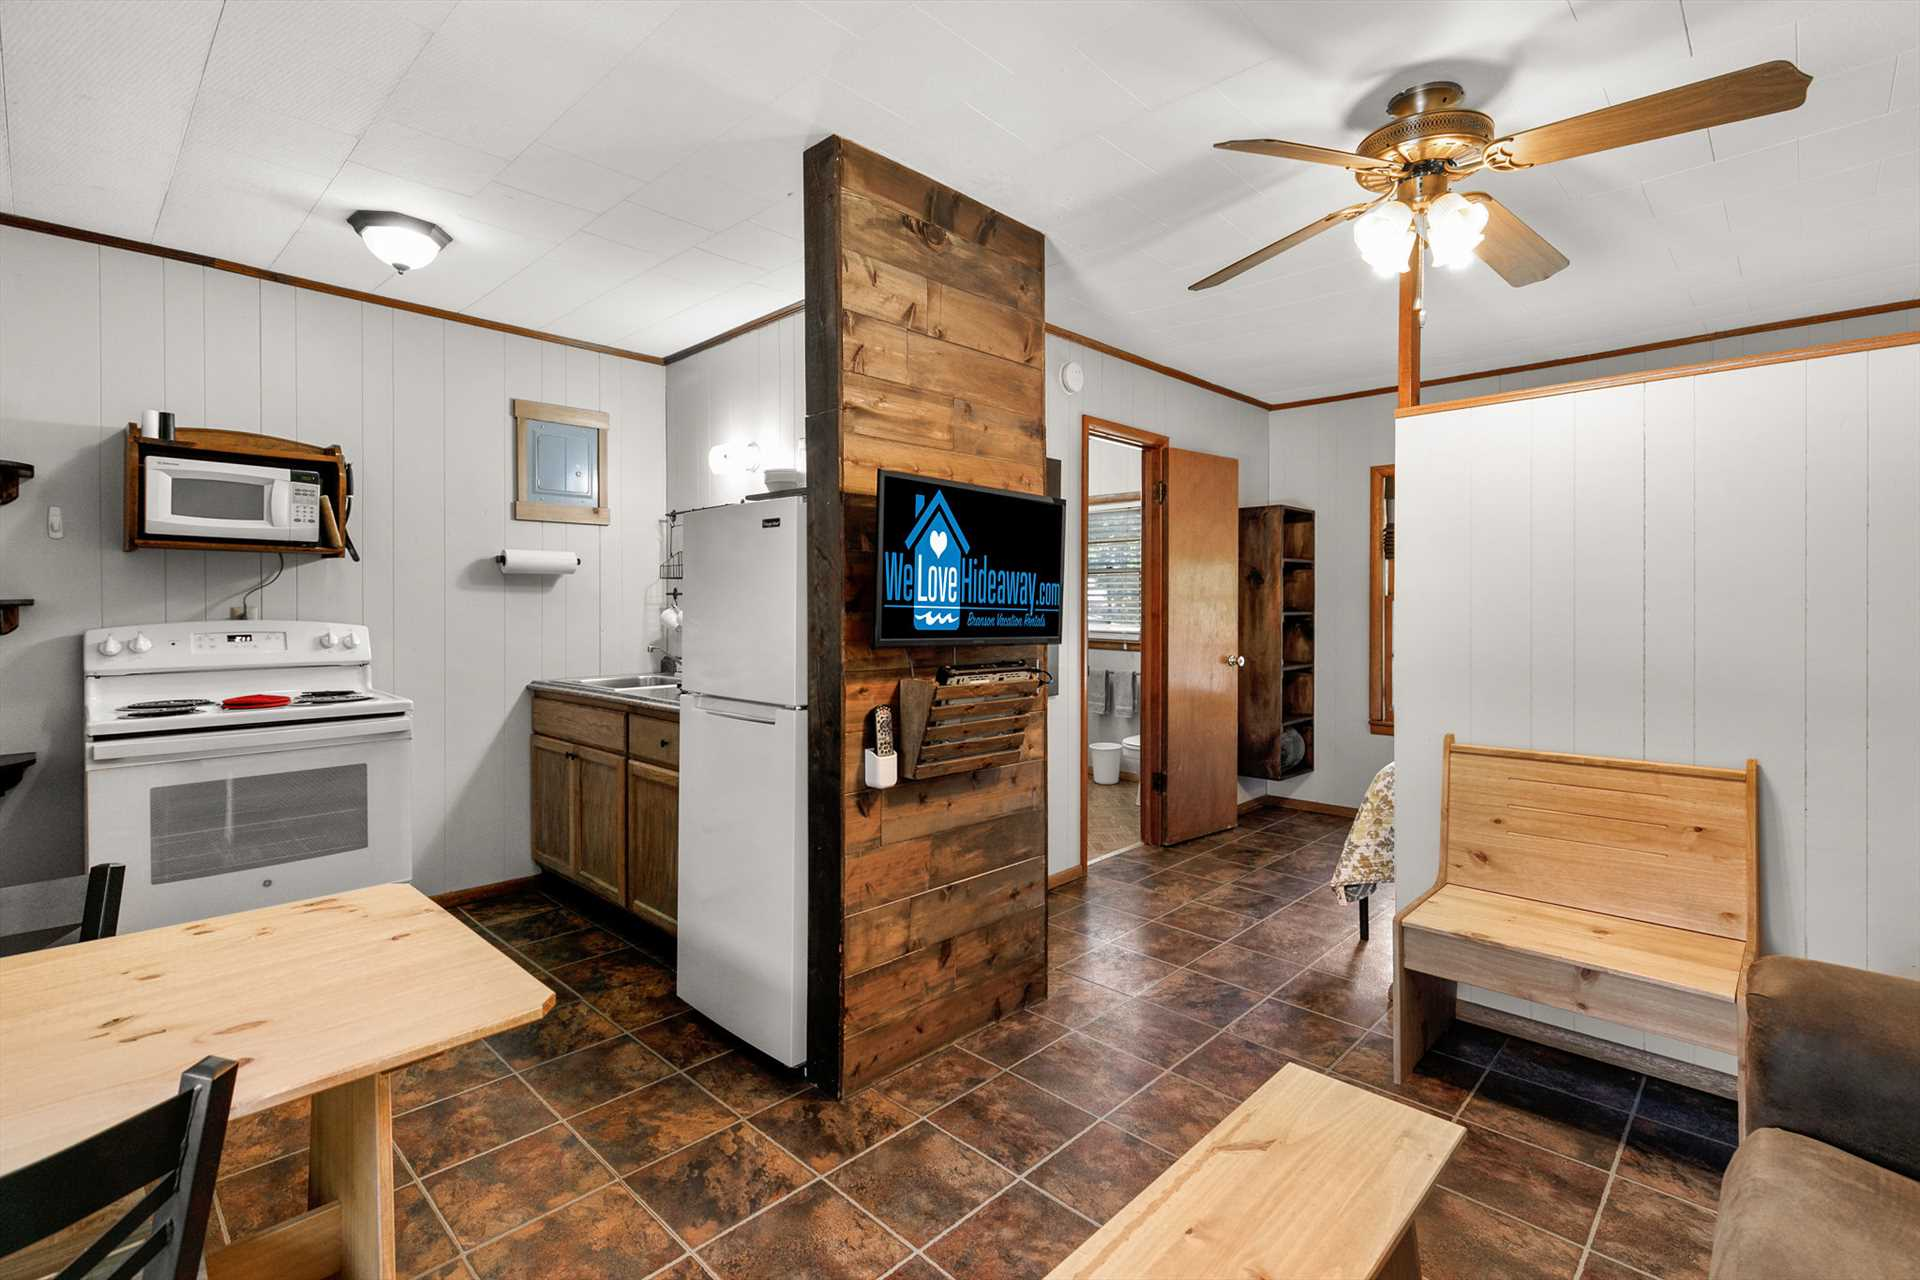 The living area is open to the kitchen.